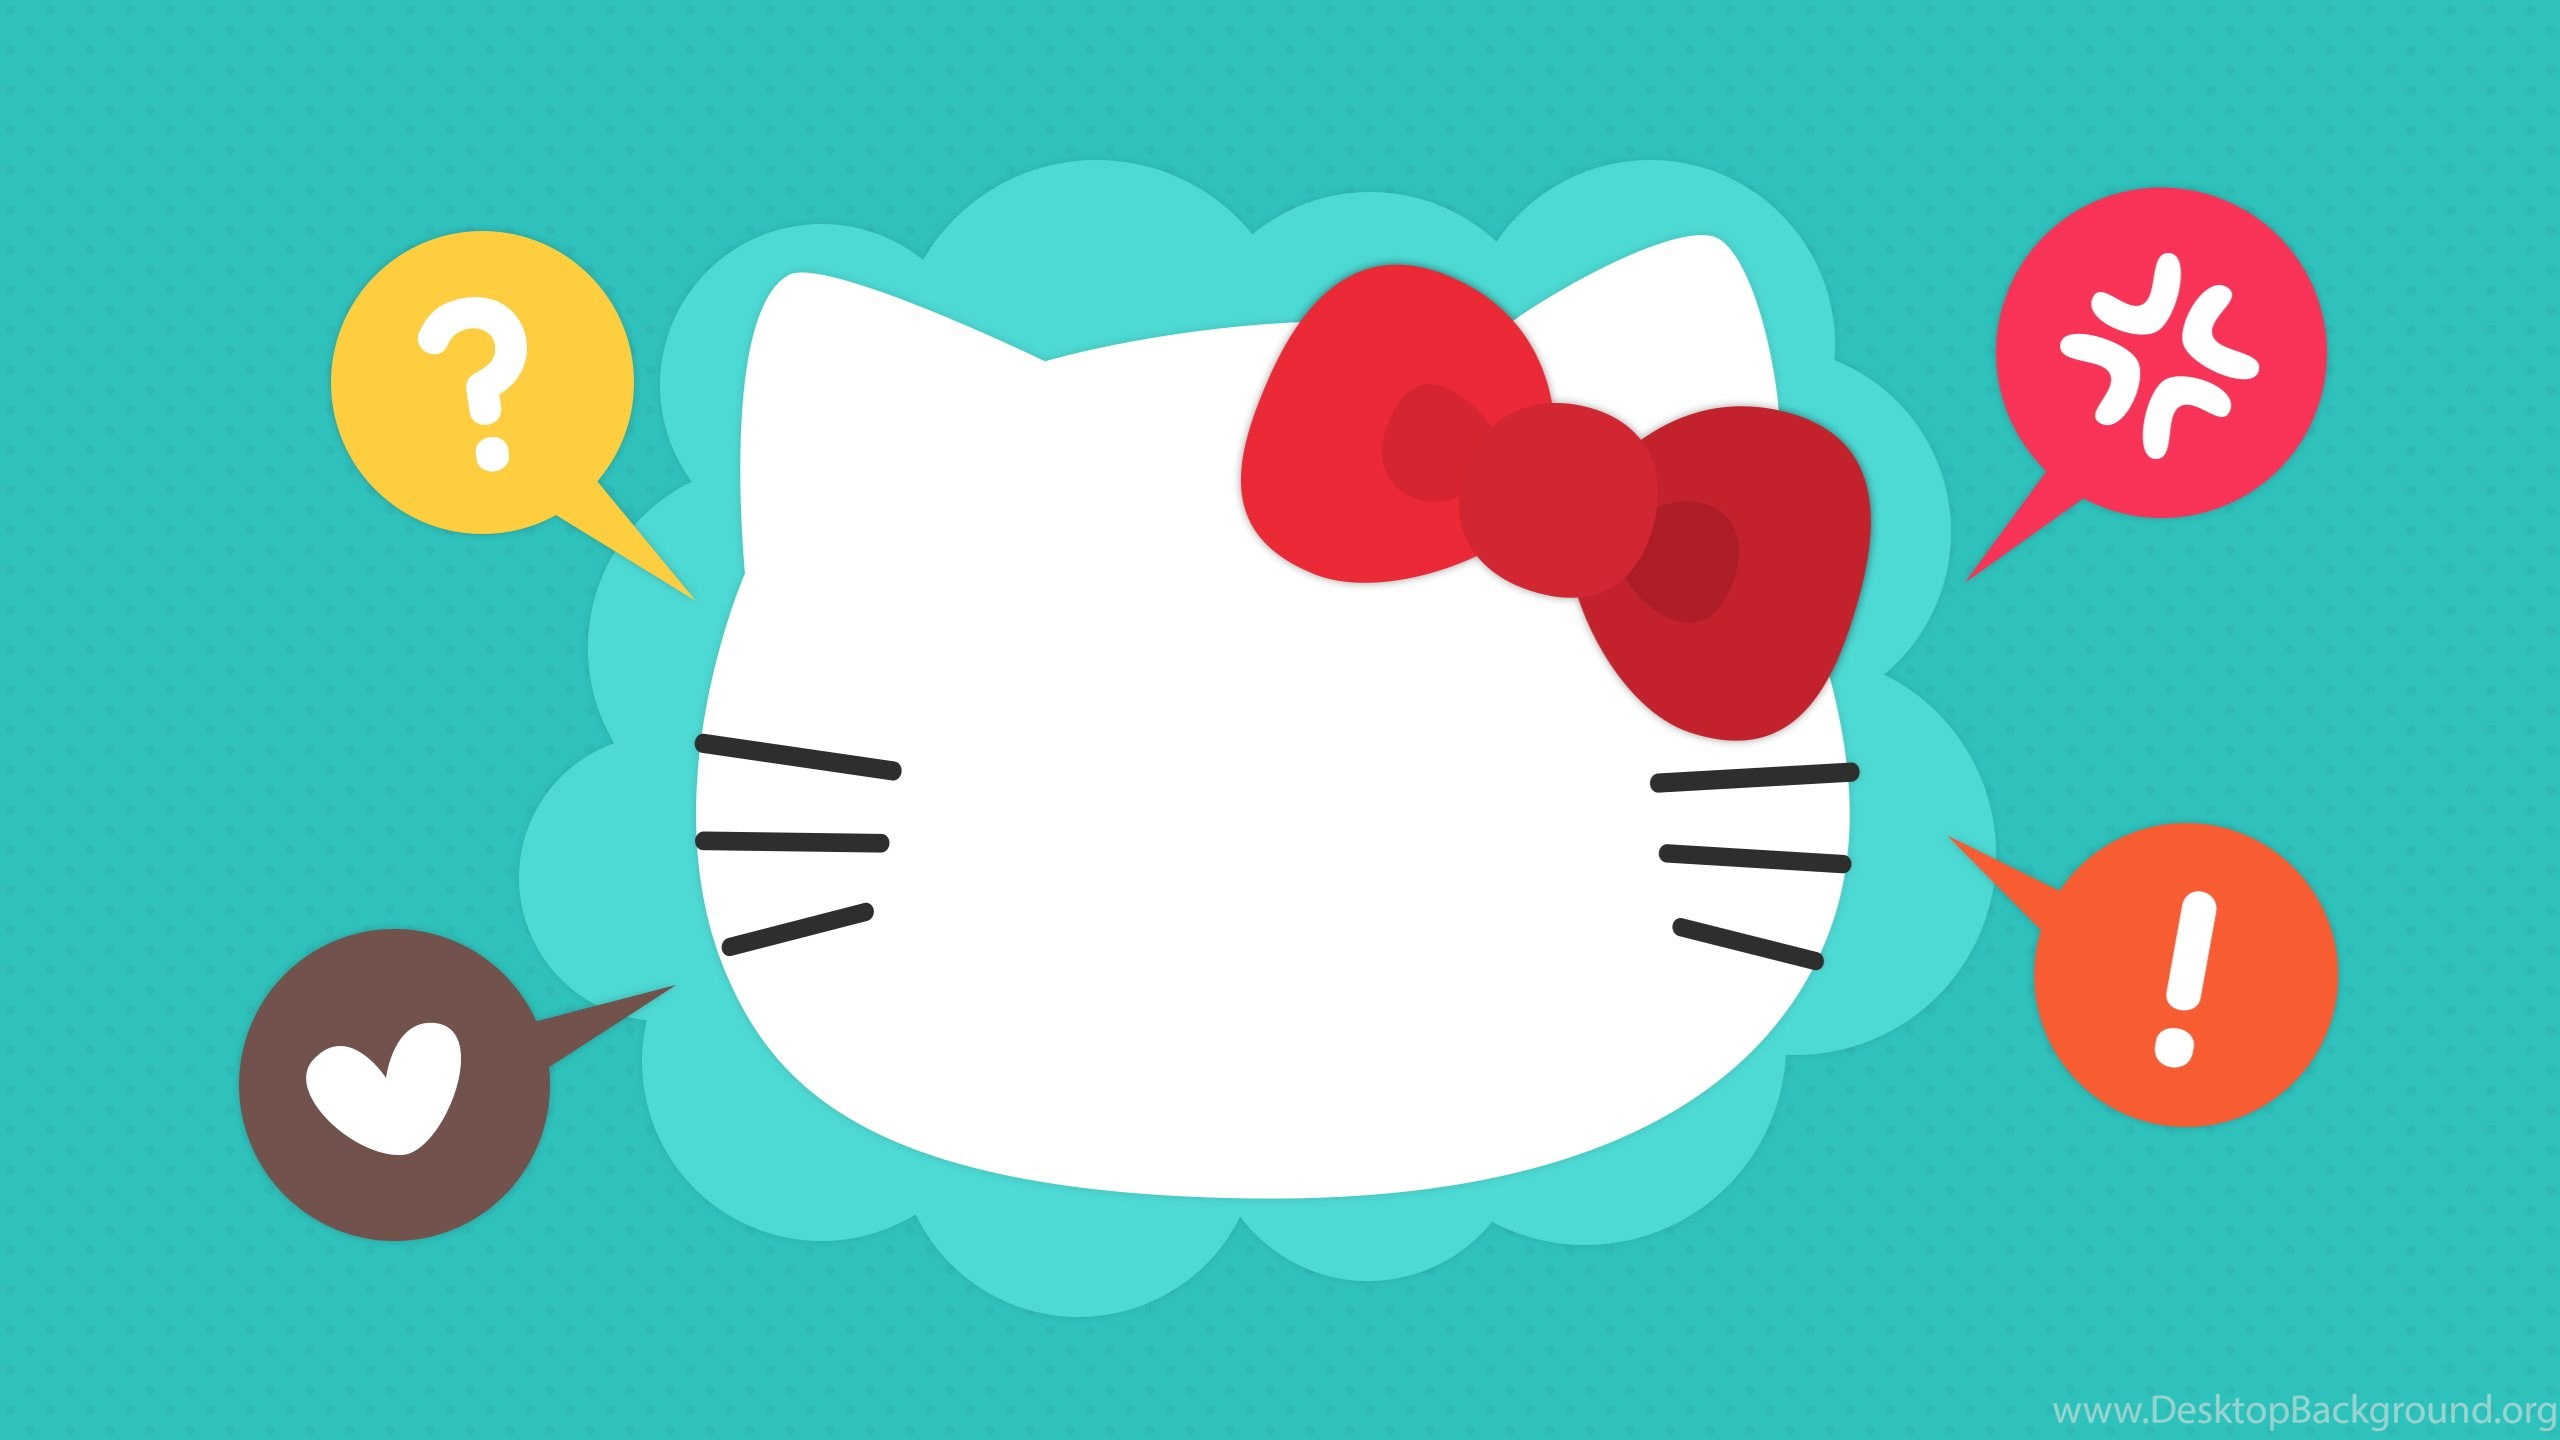 Good Wallpaper Hello Kitty Android - 594986_hello-kitty-wallpapers-433-hd-wallpapers_2560x1600_h  Graphic_218170.jpg